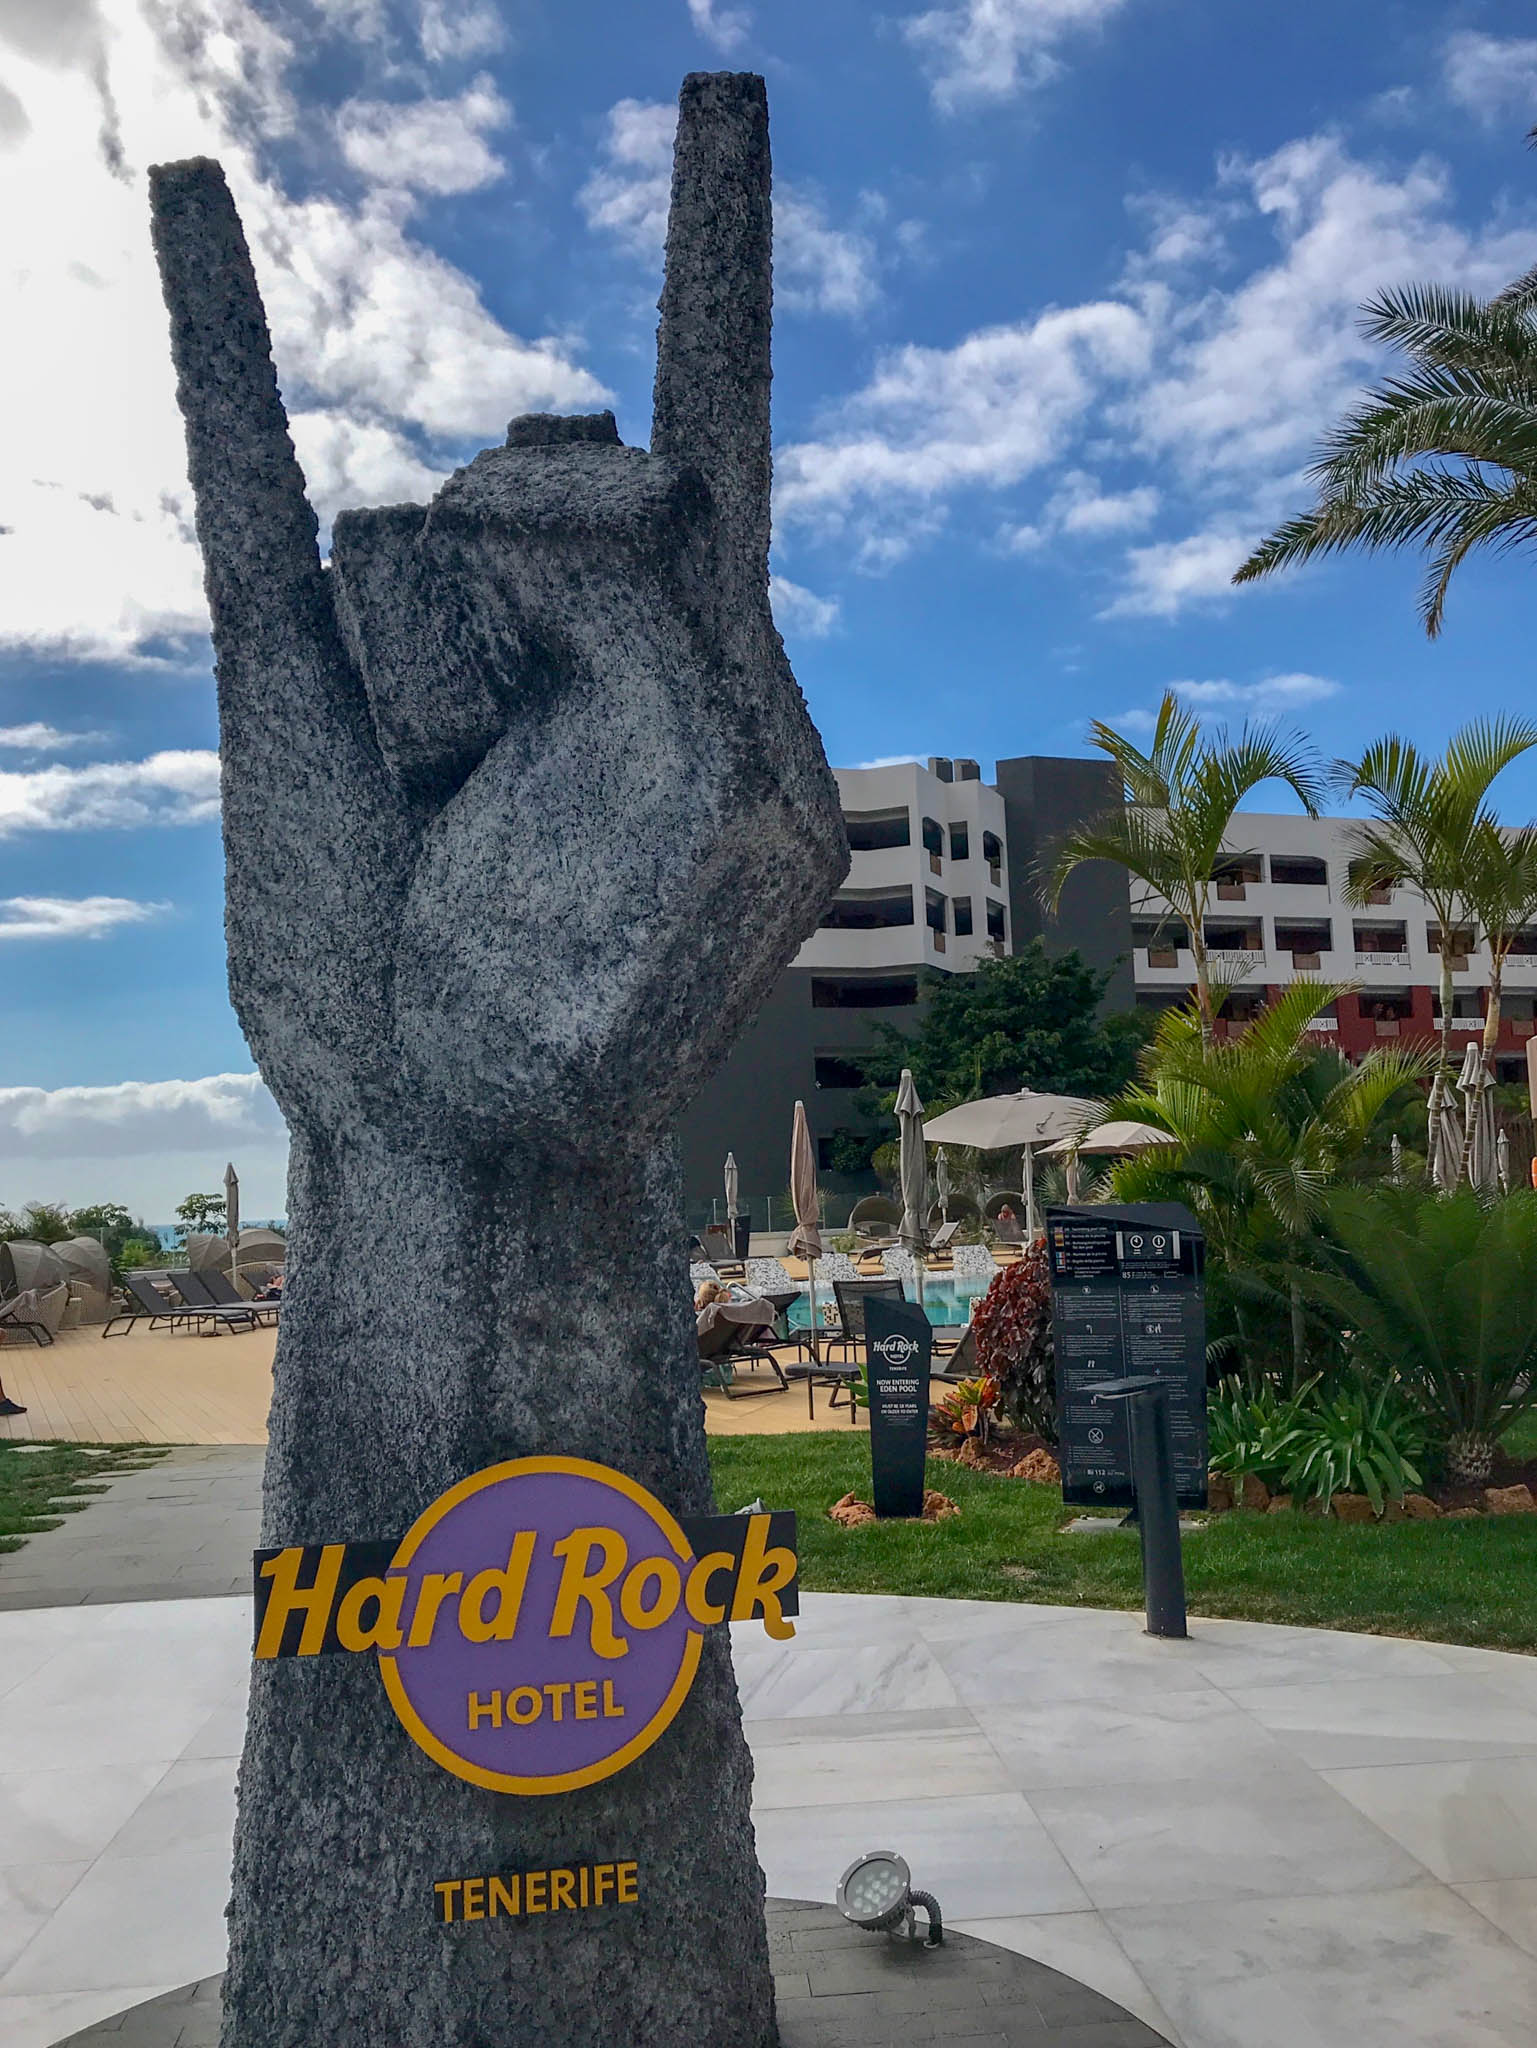 Hard Rock's handelsmerk